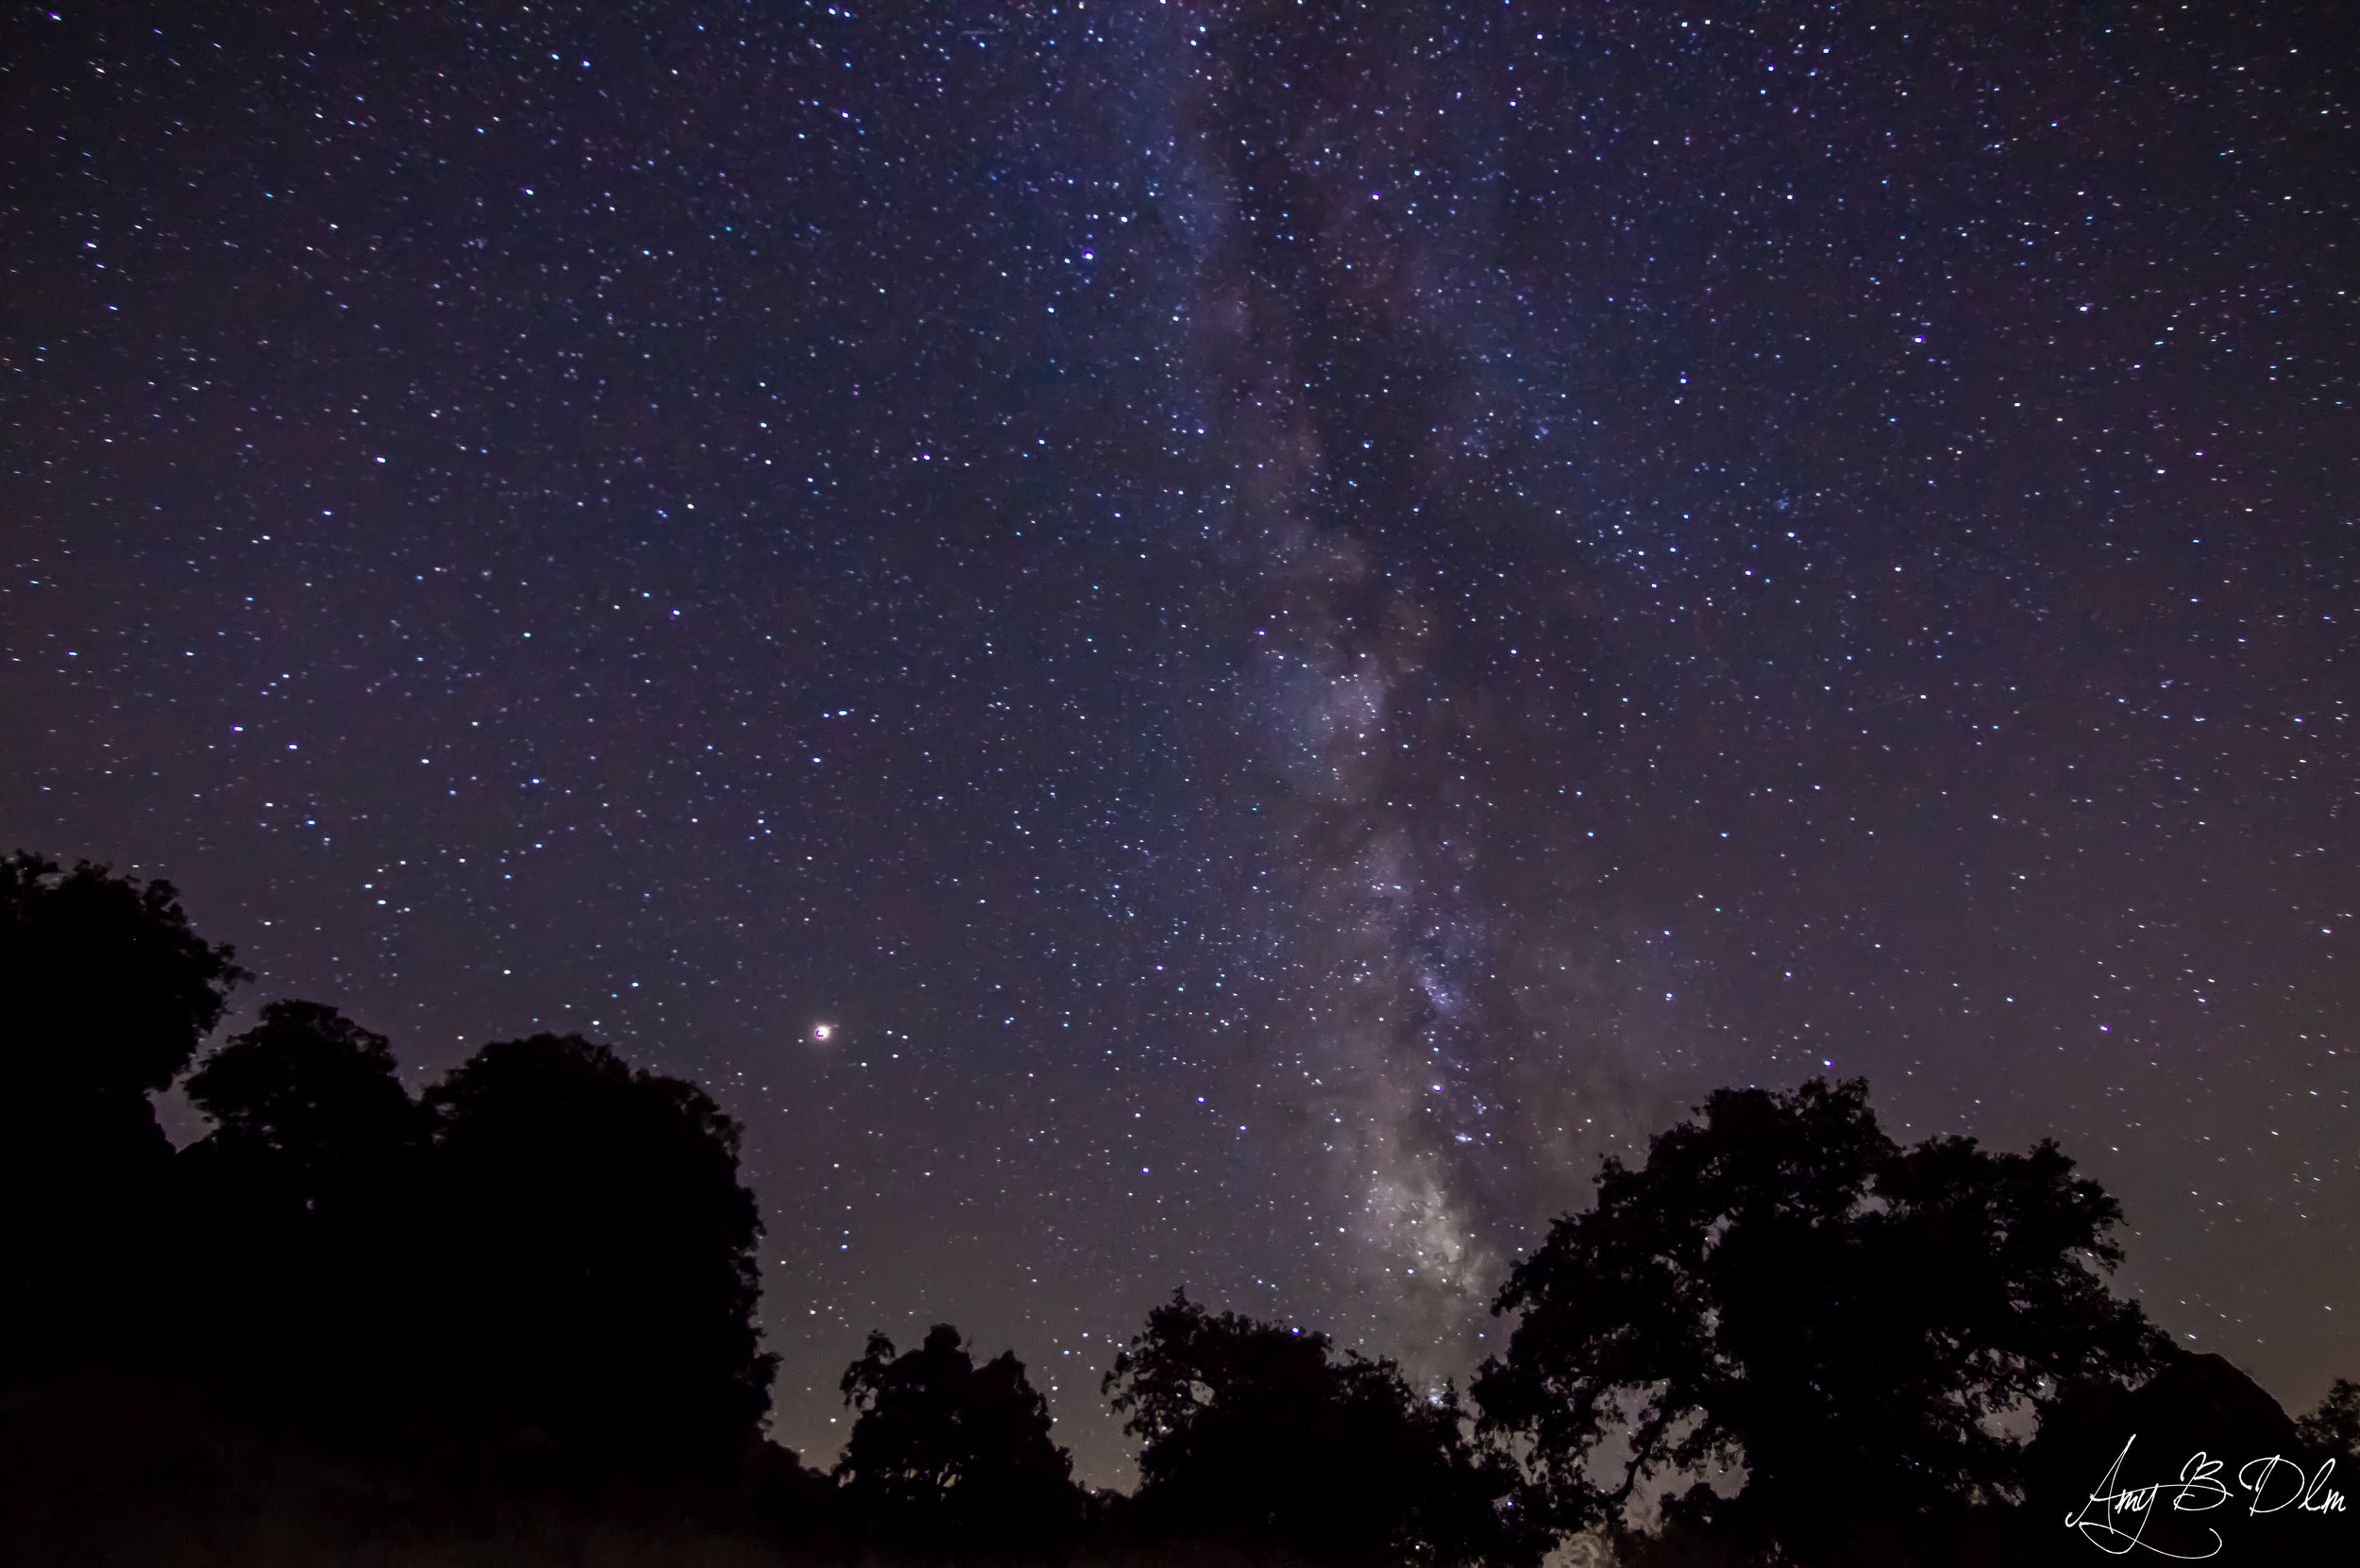 Photo of Mars and the milky way taken this week by Amy, one of our volunteers.  Amy B Dlm Photography